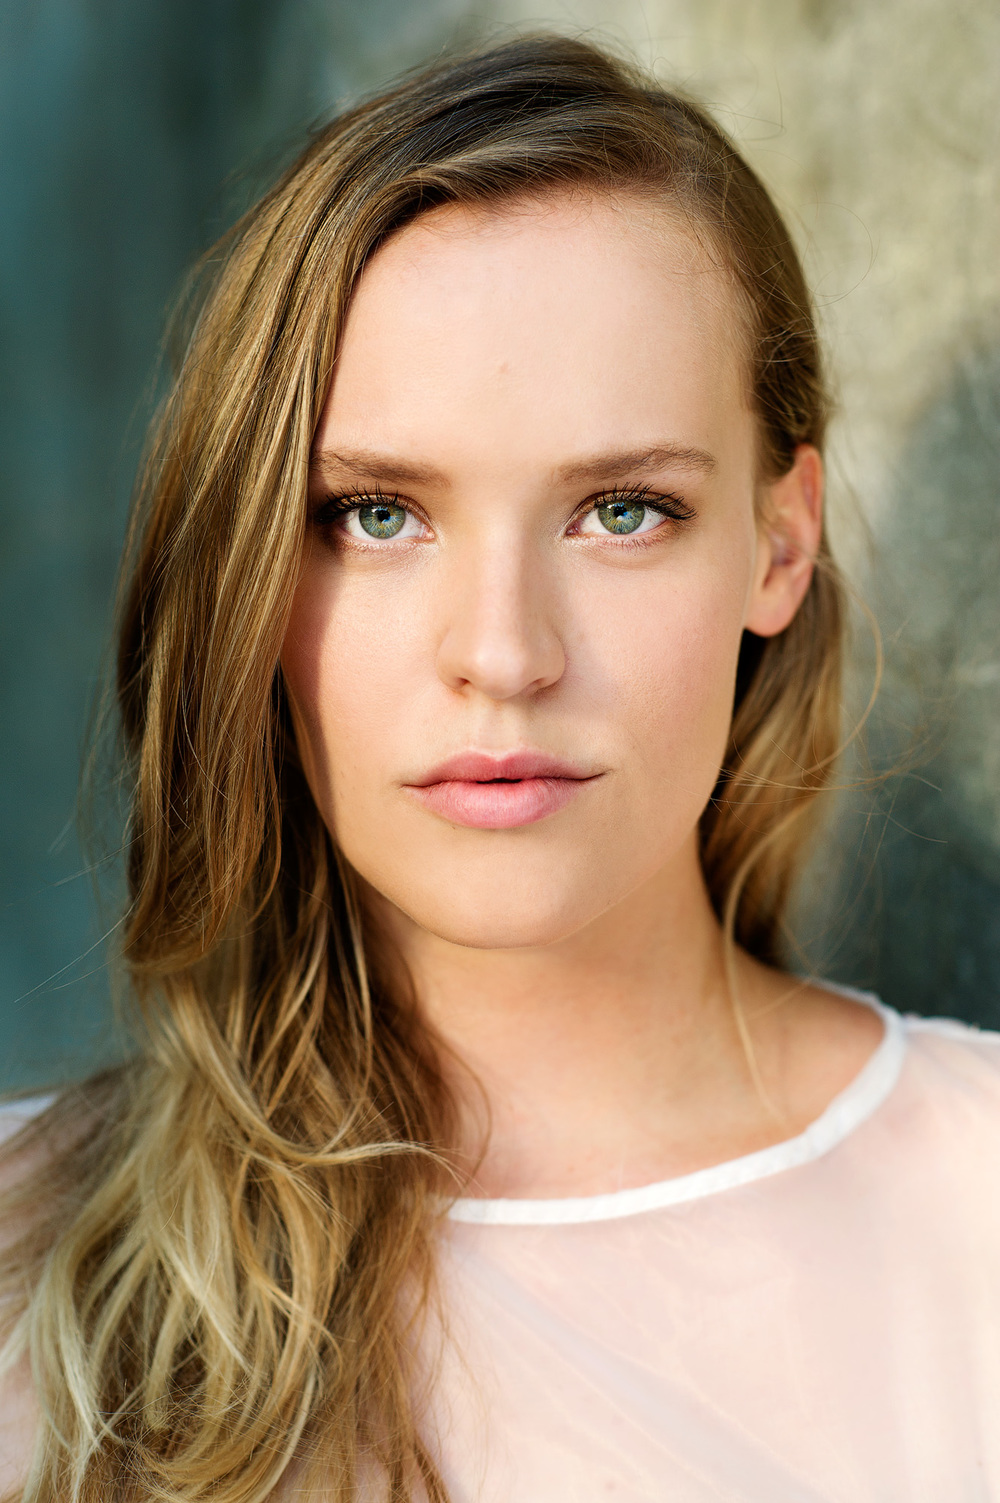 Alannah Keating - Brisbane Actress Headshot Photography